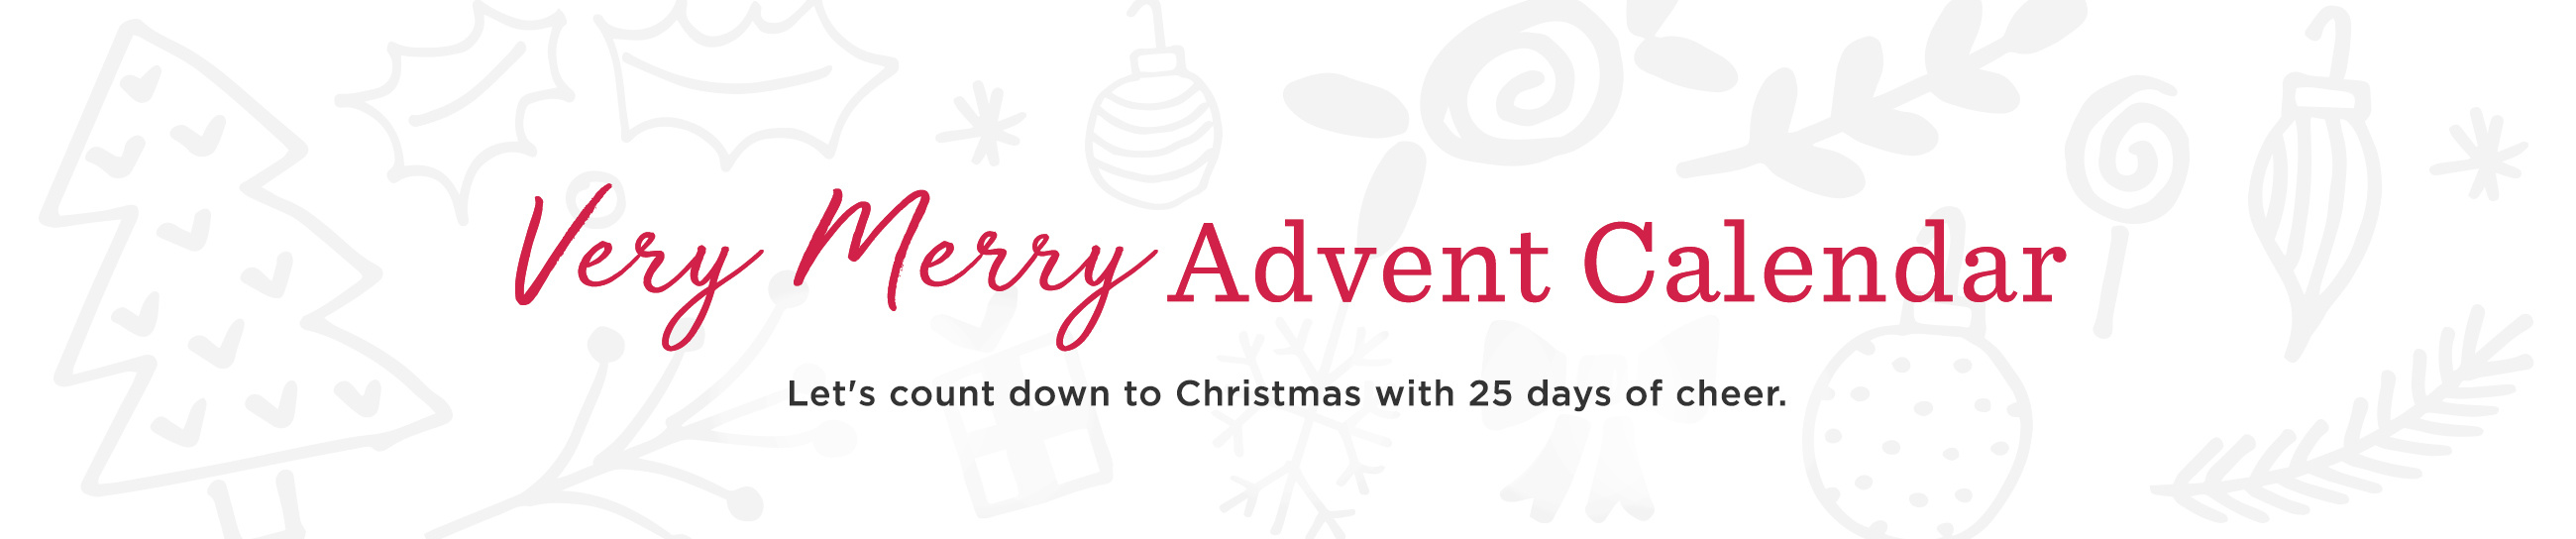 Very Merry Advent Calendar.  Let's count down to Christmas with 25 days of cheer.